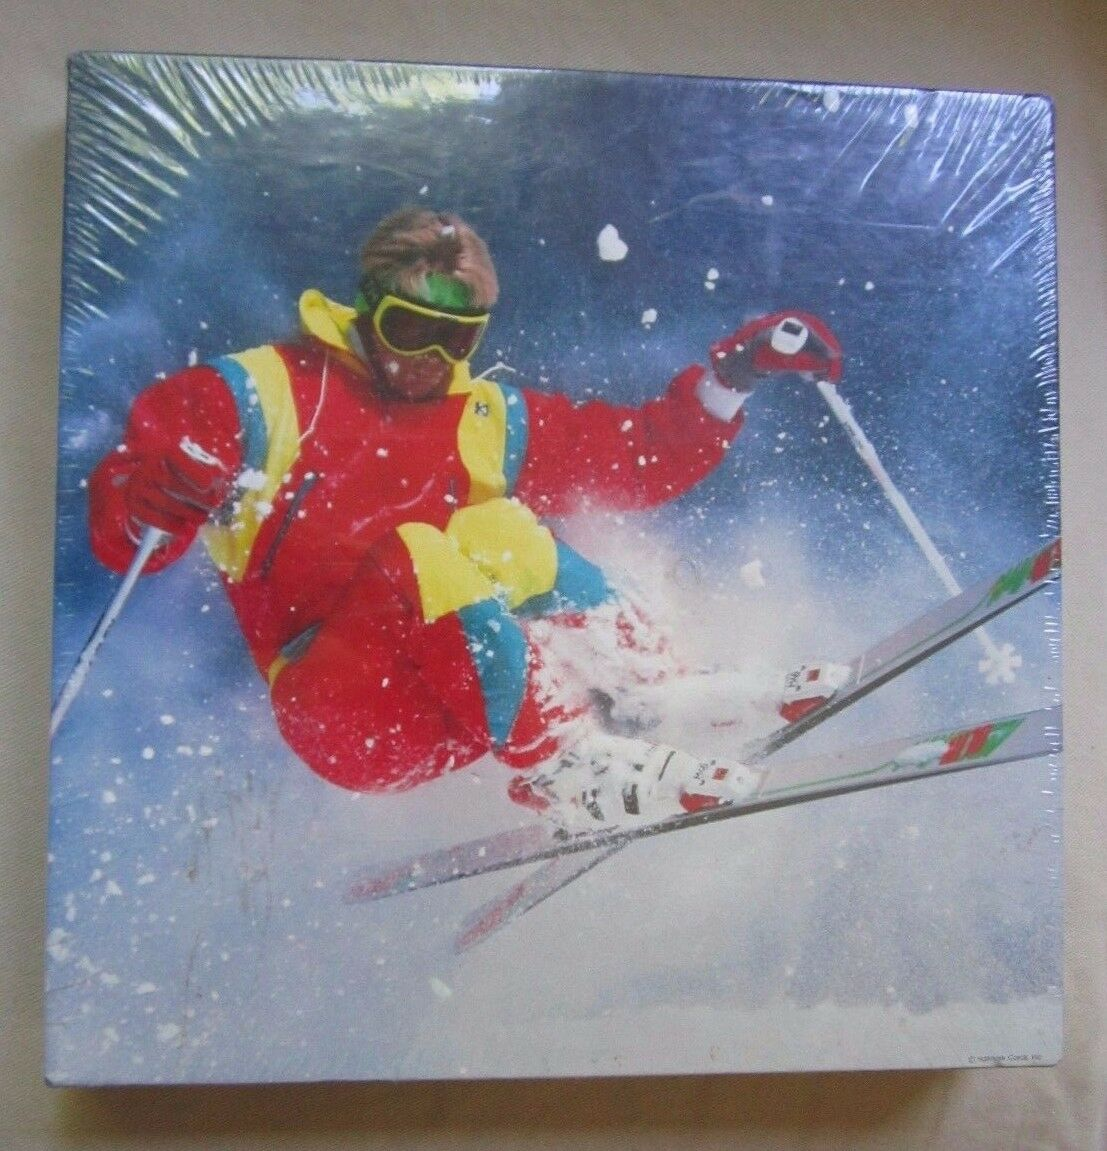 SPRINGBOK Jigsaw Puzzle DOWN HILL RUN New Sealed in Box (skiing) 20x20 pzl2434